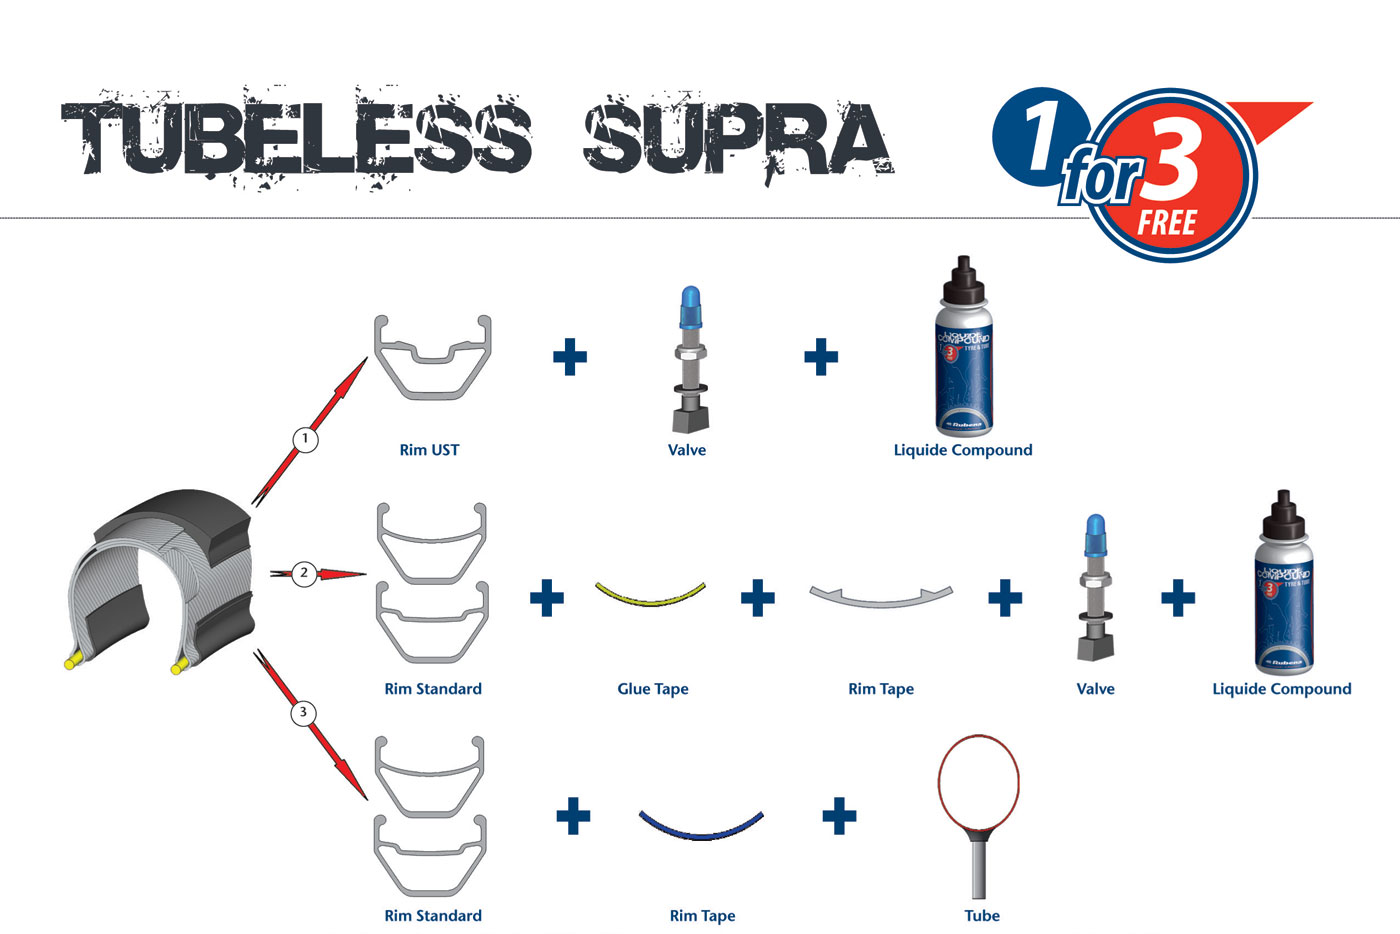 Tubeless Supra 1 for 3